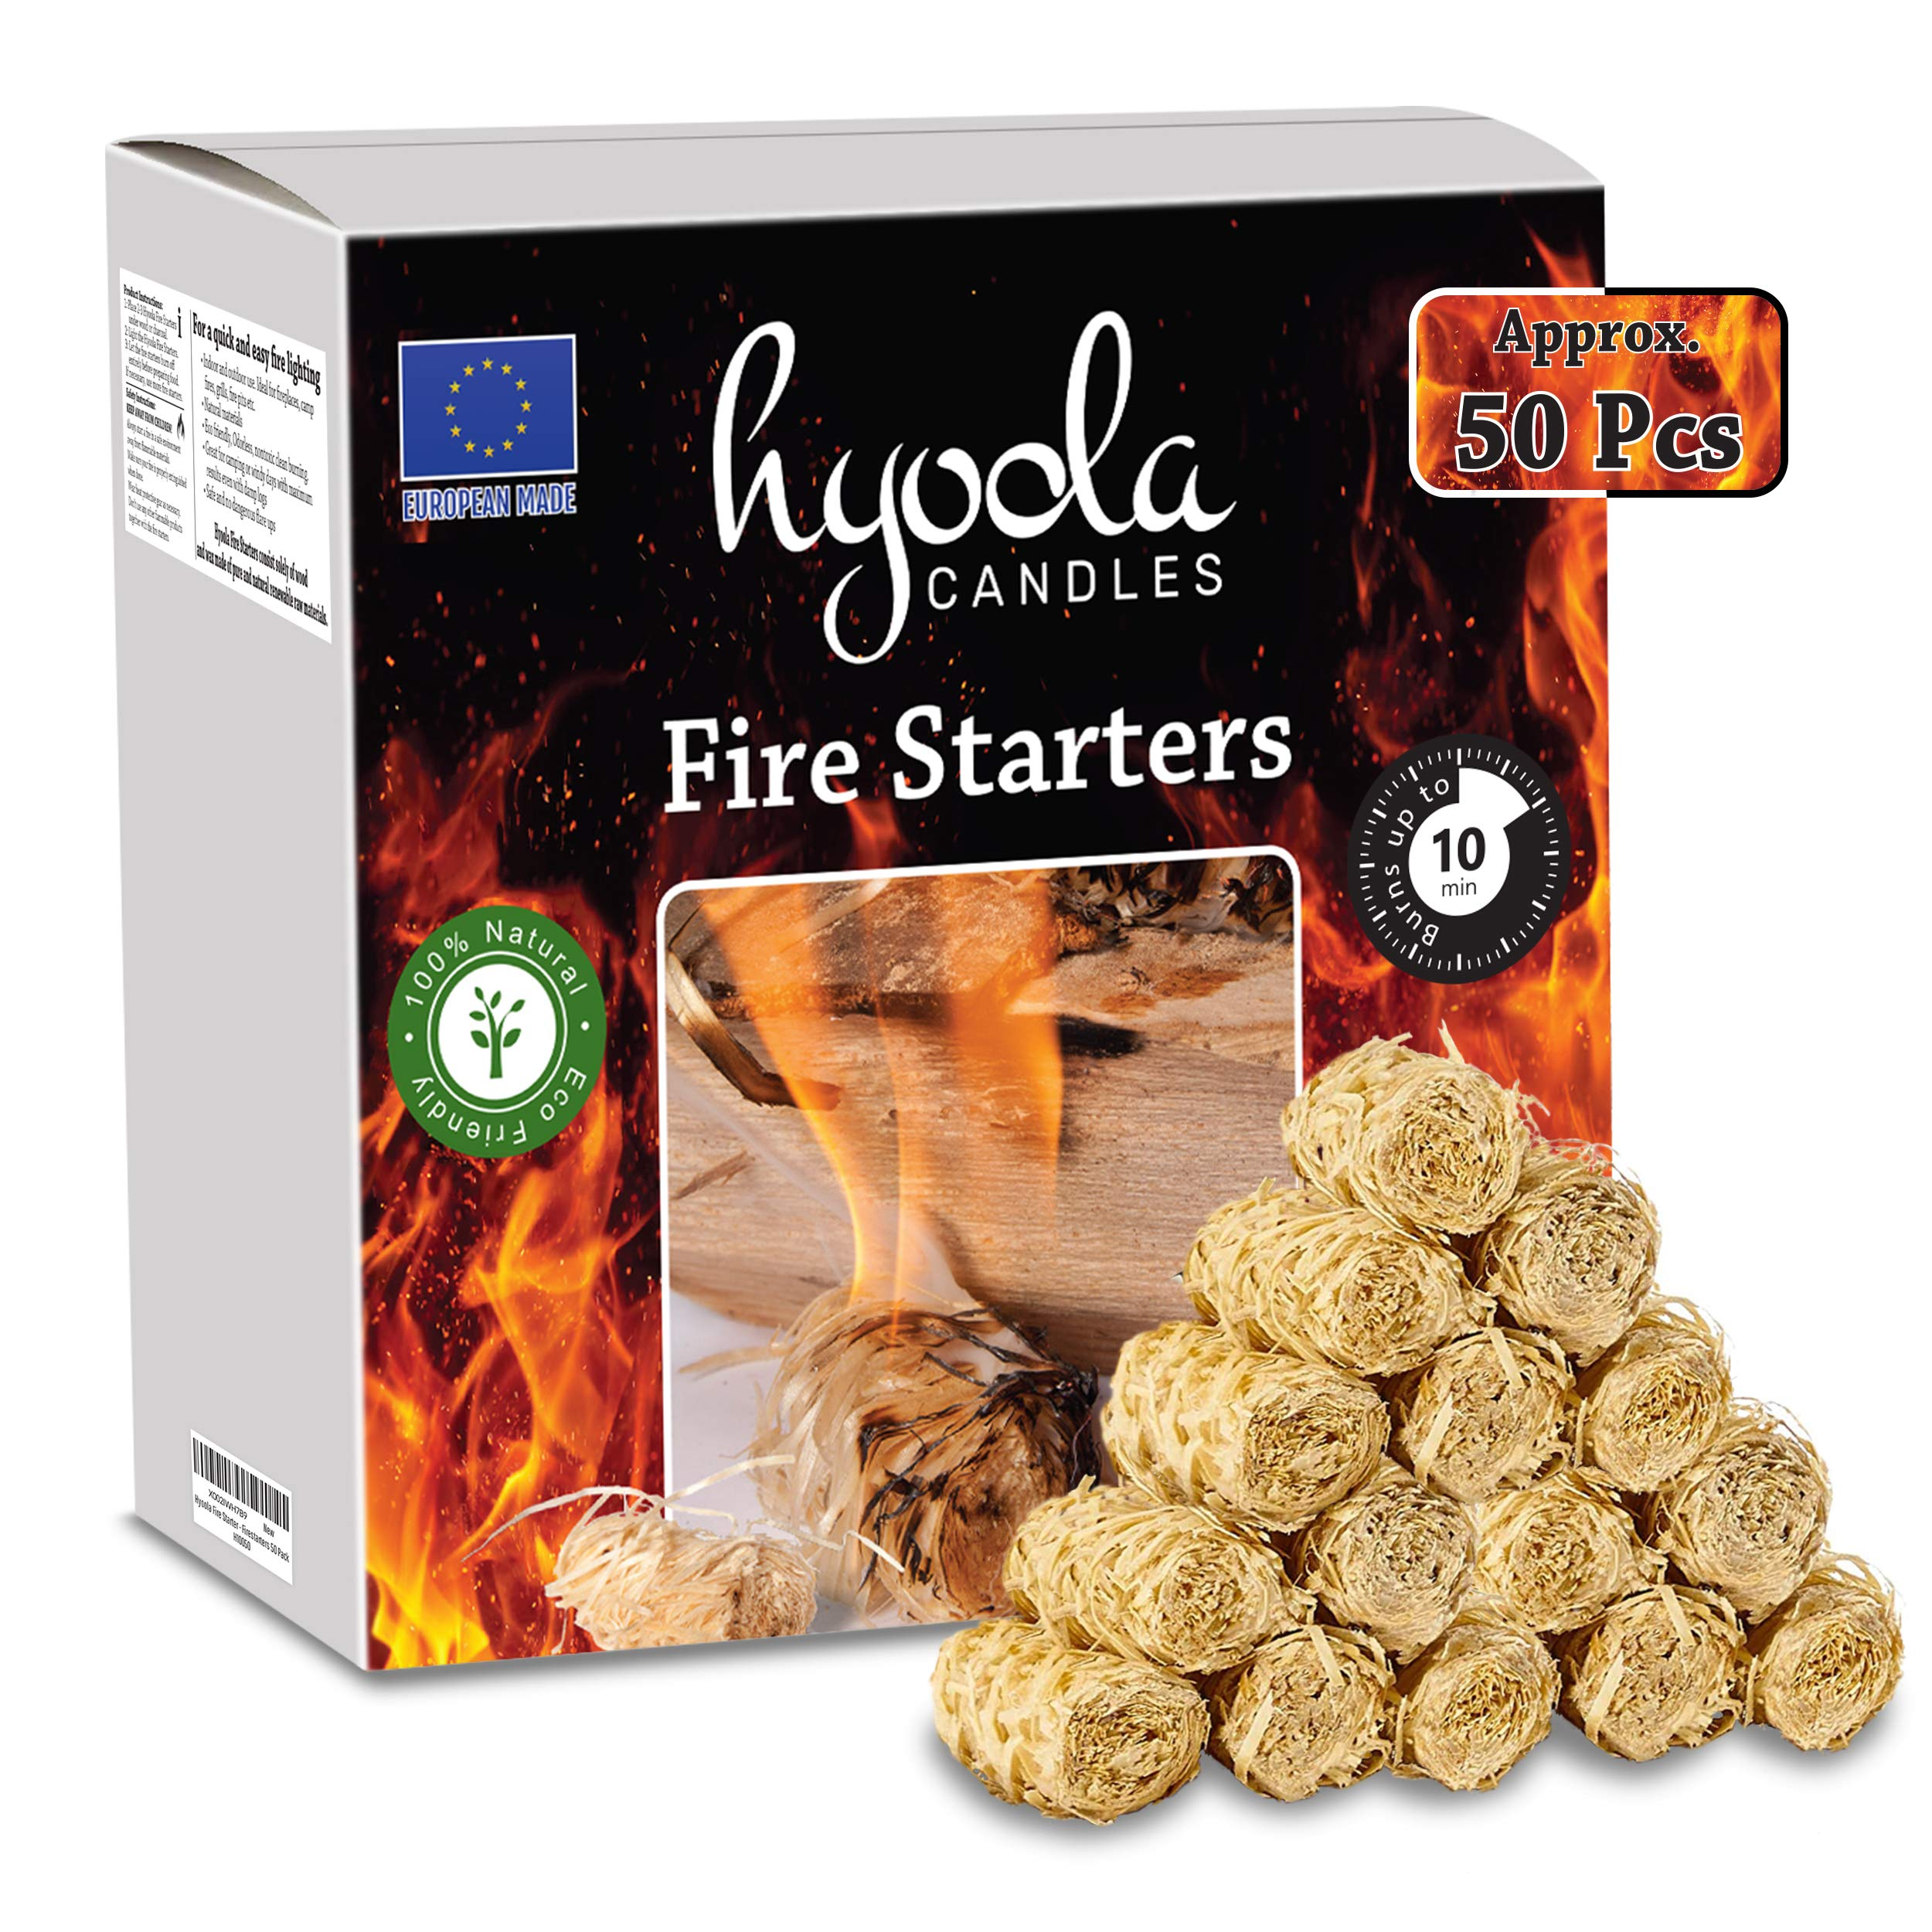 Hyoola Firestarters - 100% Natural Fire Starters - Easy to Use for BBQ & Grill, Campfire, Charcoal, Fire Pit. Waterproof for Indoor/Outdoor Use - No Flare Ups - 10 Minute Burn - 50 Firelighters